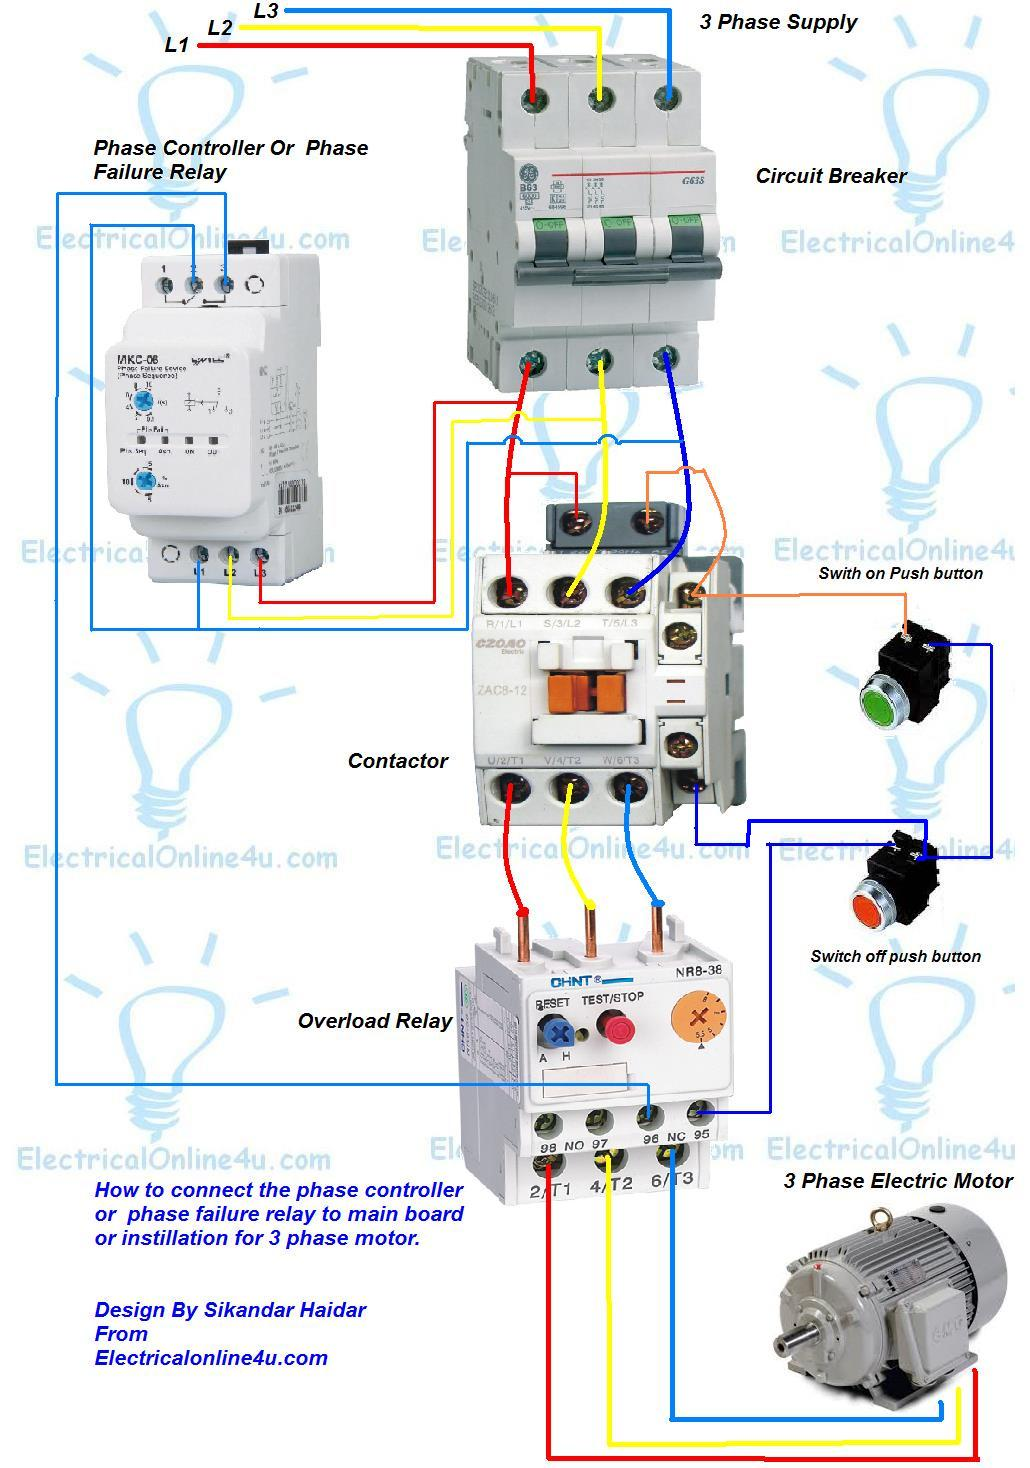 Phase%2Bfailure%2Brelay%2B %2Bphase%2Bcontroller%2Binstilaion%2Bin%2B3%2Bphase%2BMain%2Bboard%2Bor%2Bfor%2B3%2Bphase%2Bmotor phase controller wiring phase failure relay diagram electrical 3 phase surge protector wiring diagram at webbmarketing.co